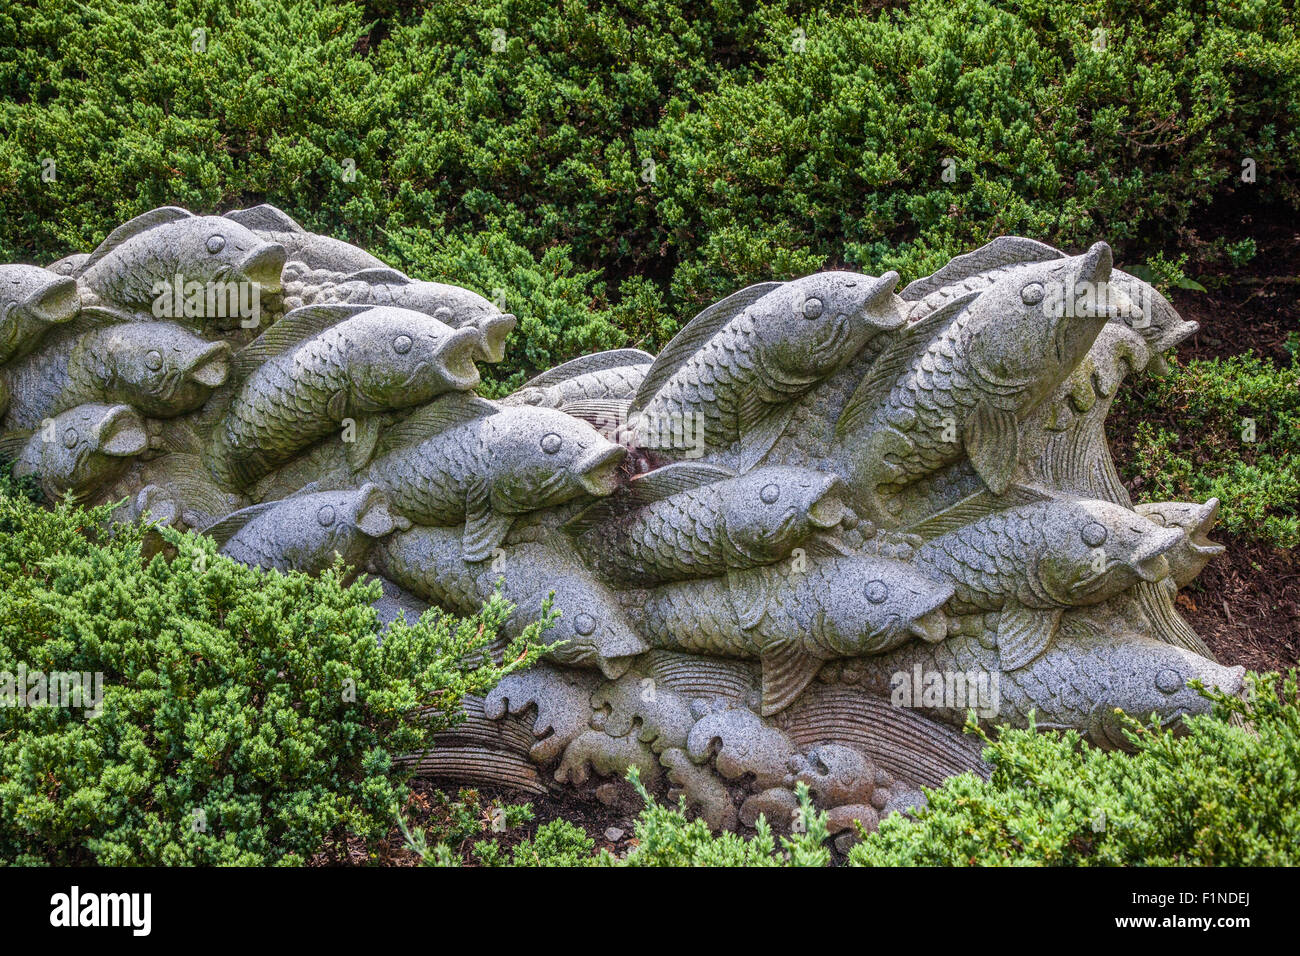 stone carving of a shoal of Koi's in waves at Singapore Botanic Gardens - Stock Image